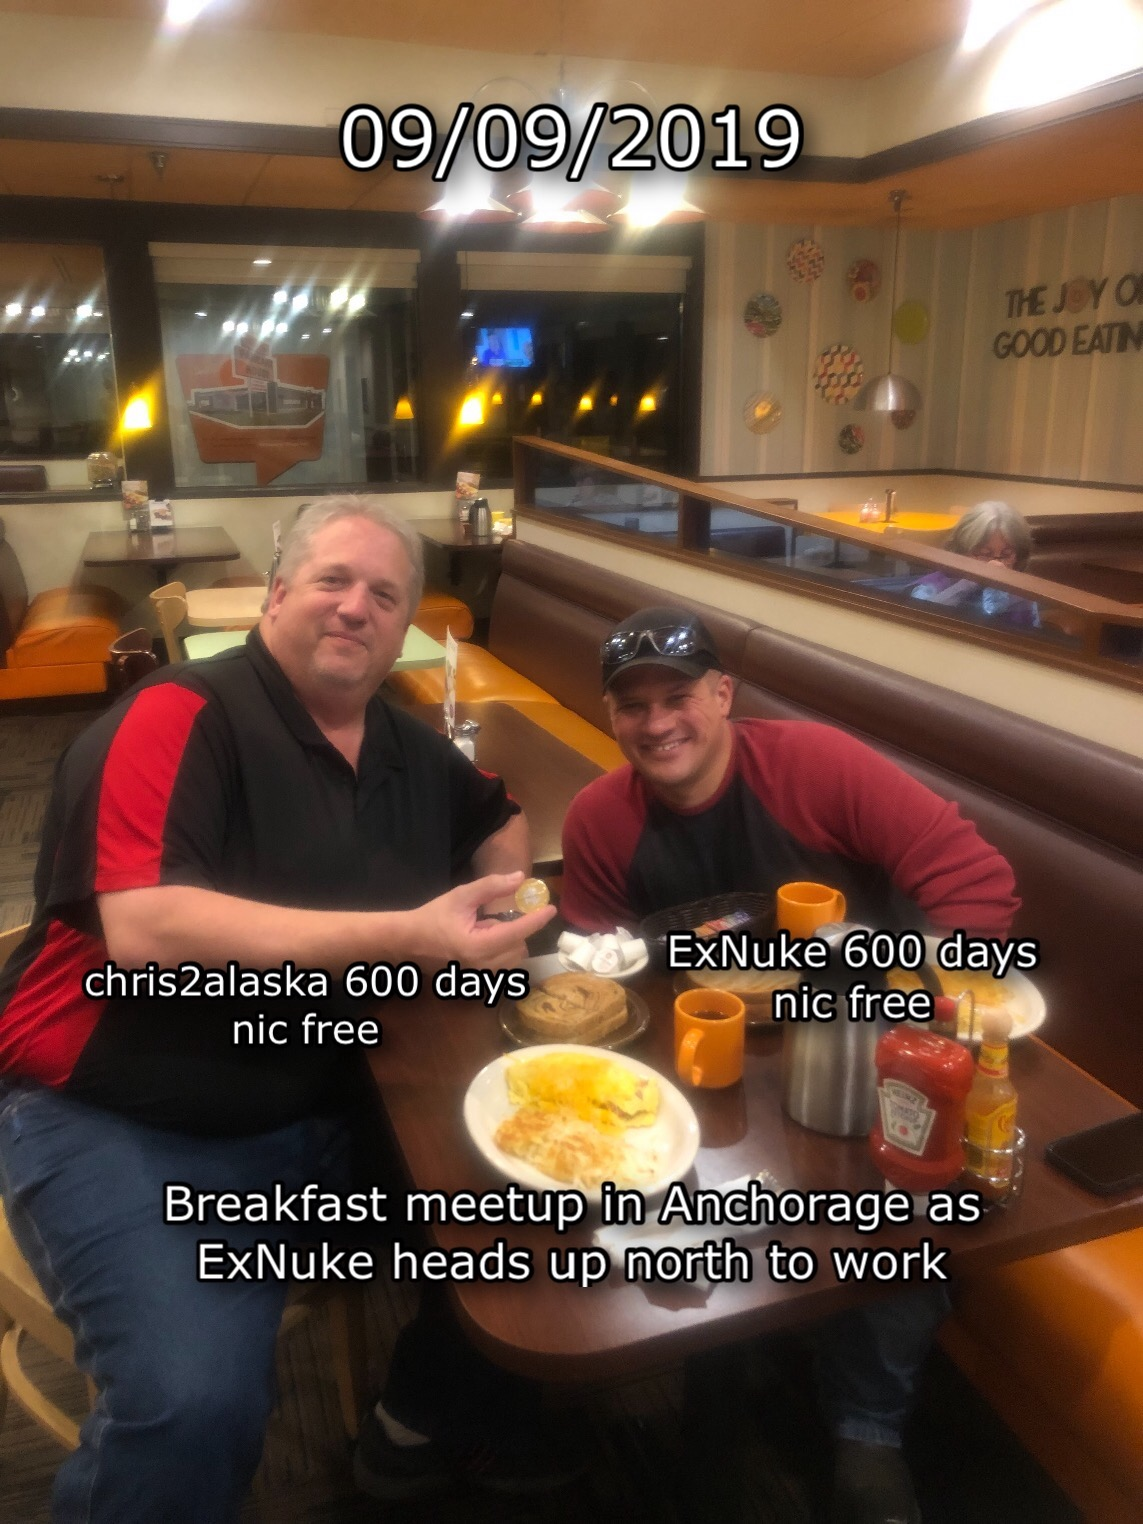 chris2alaska and ExNuke - 9.9.2019